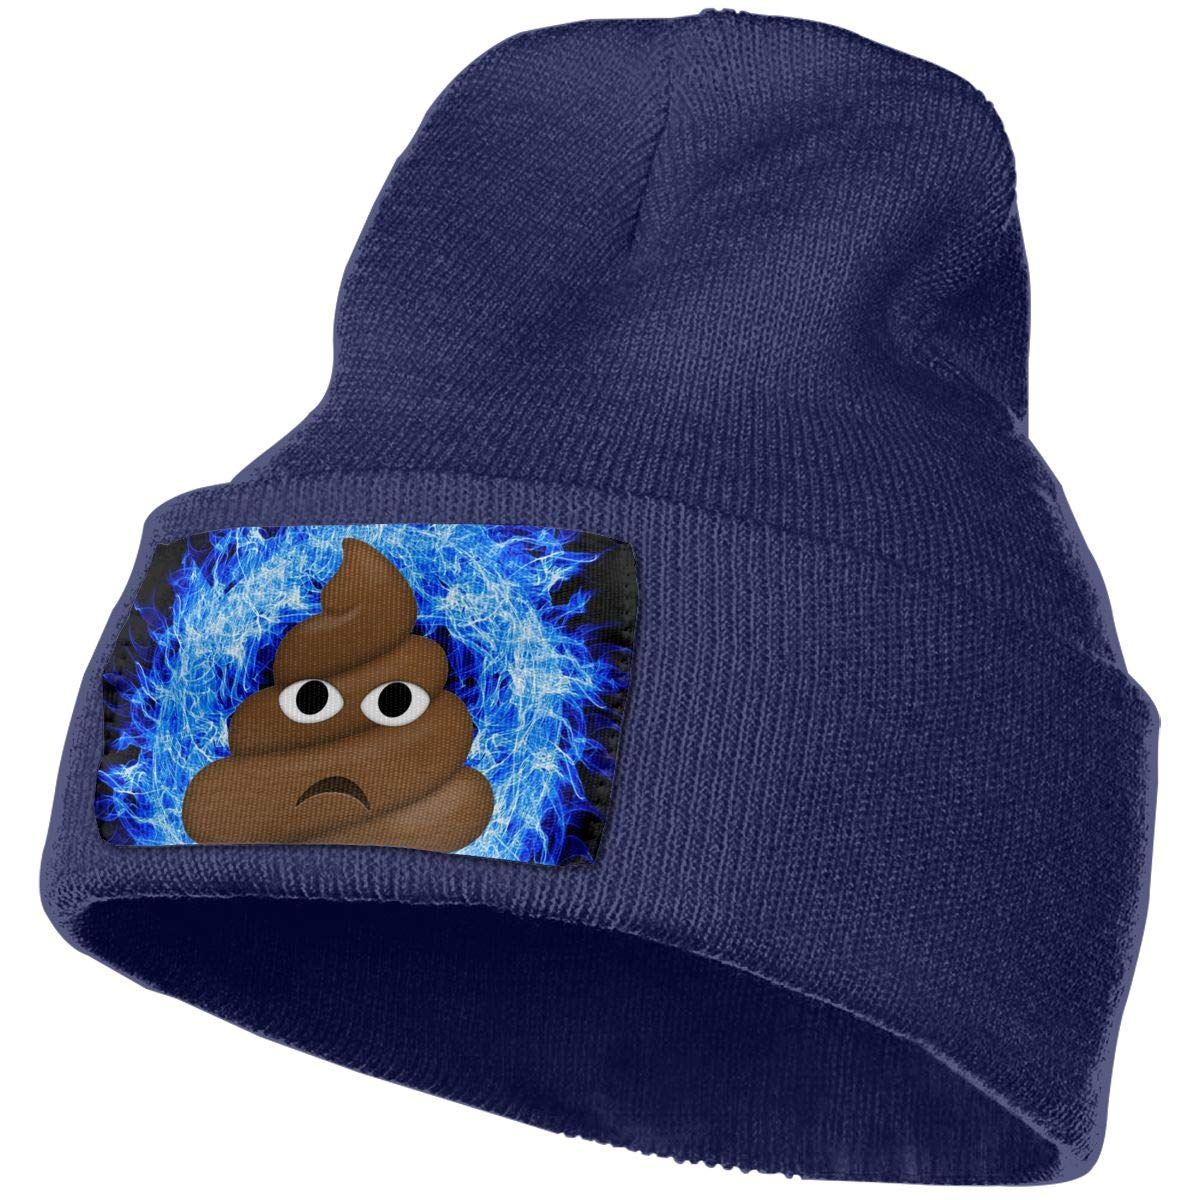 Poop Emoji Shit Men/&Women Warm Winter Knit Plain Beanie Hat Skull Cap Acrylic Knit Cuff Hat